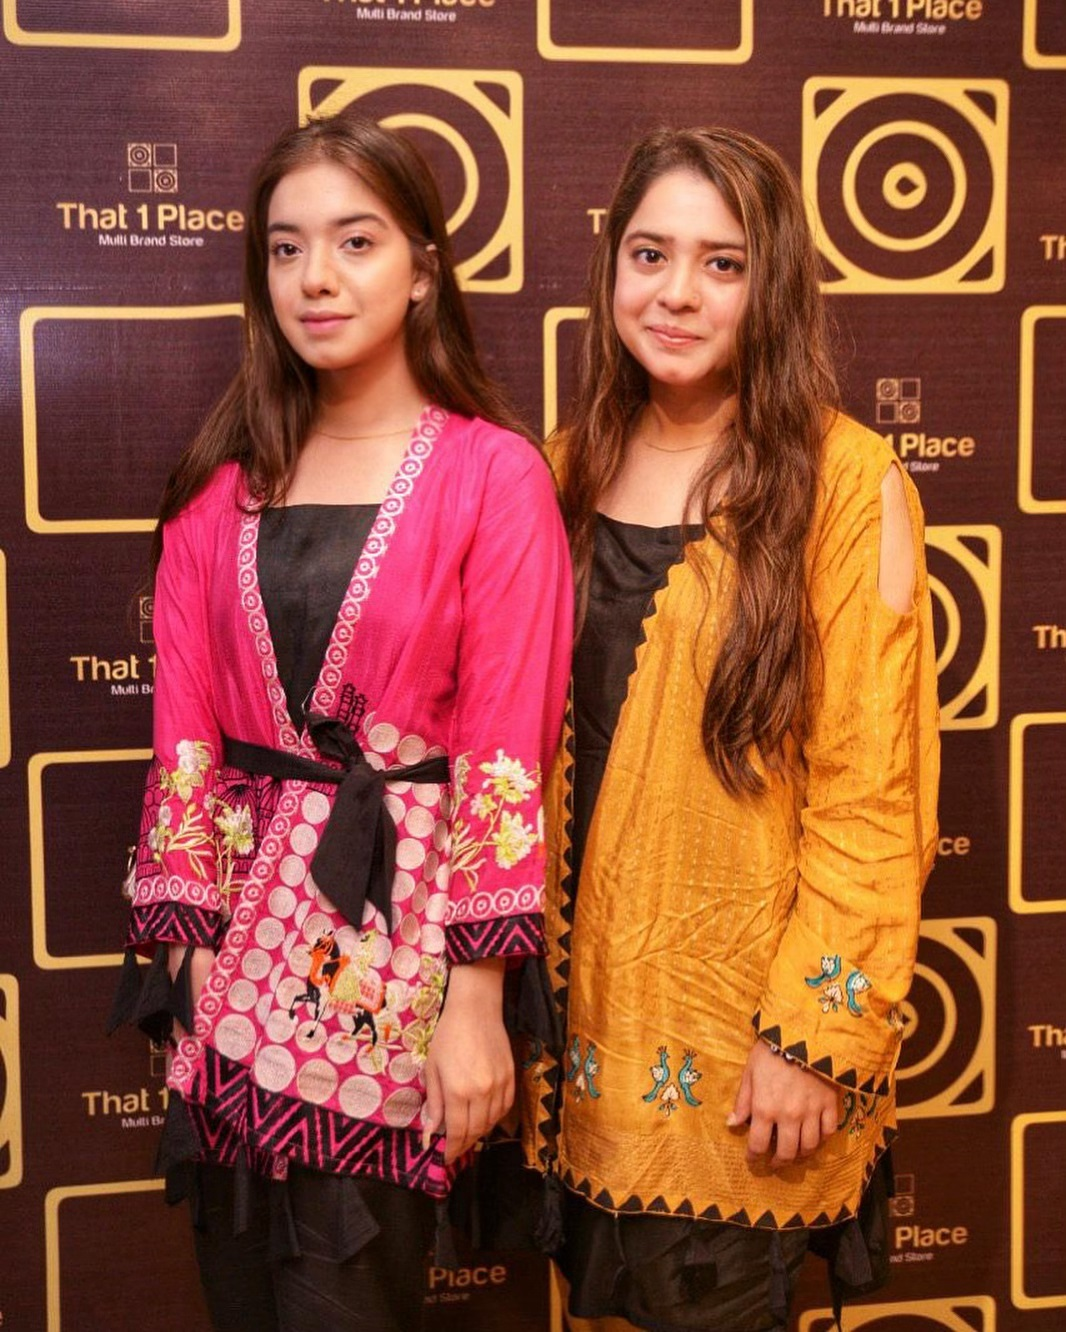 Celebrities in Sanam Jung Sister Anum Jung Launch of the new store (21)